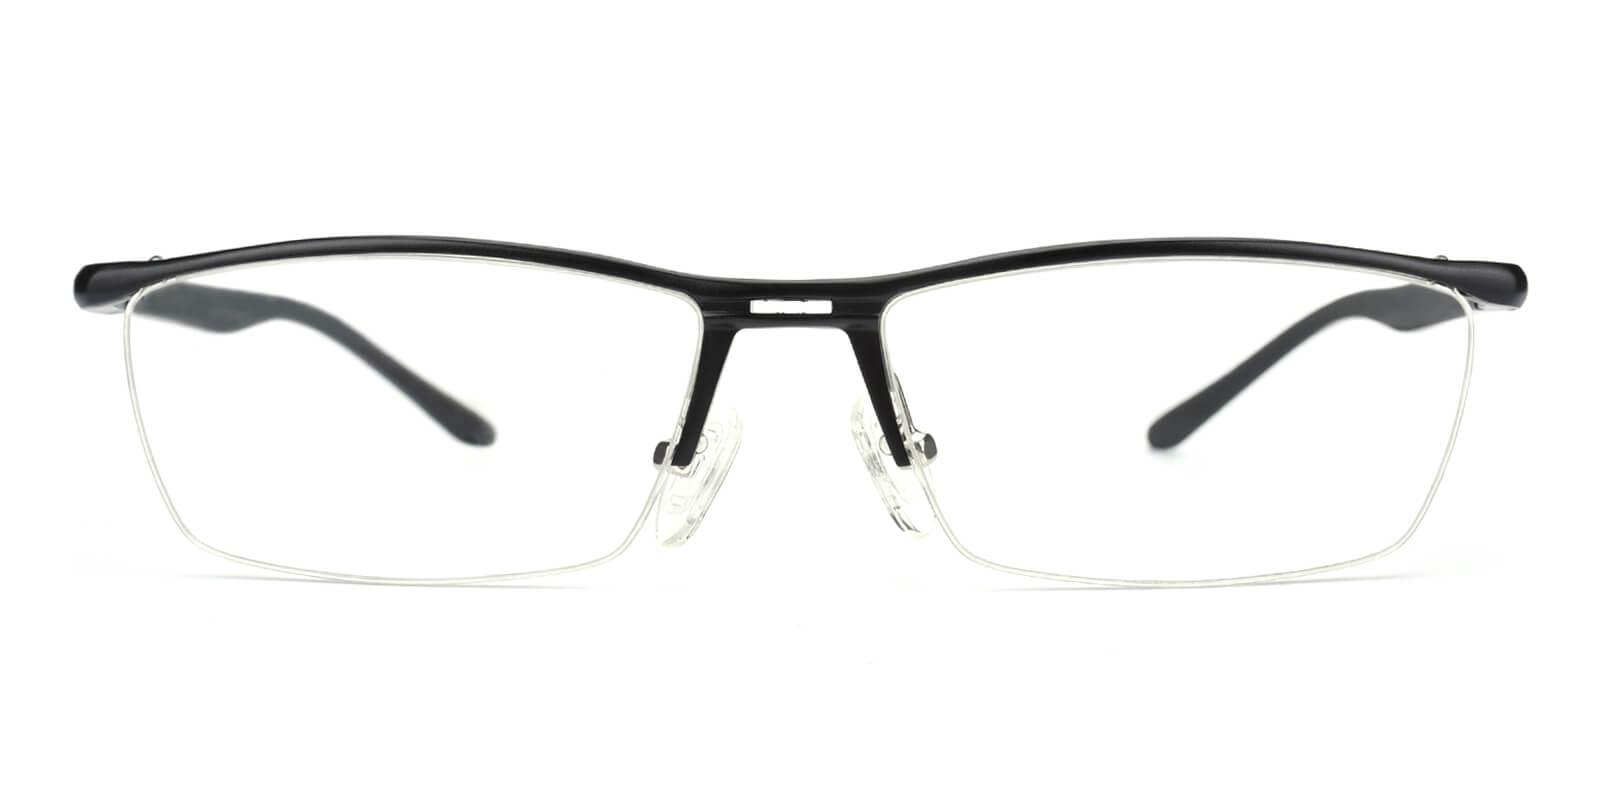 Vauseper-Black-Rectangle-Metal-Eyeglasses-additional2